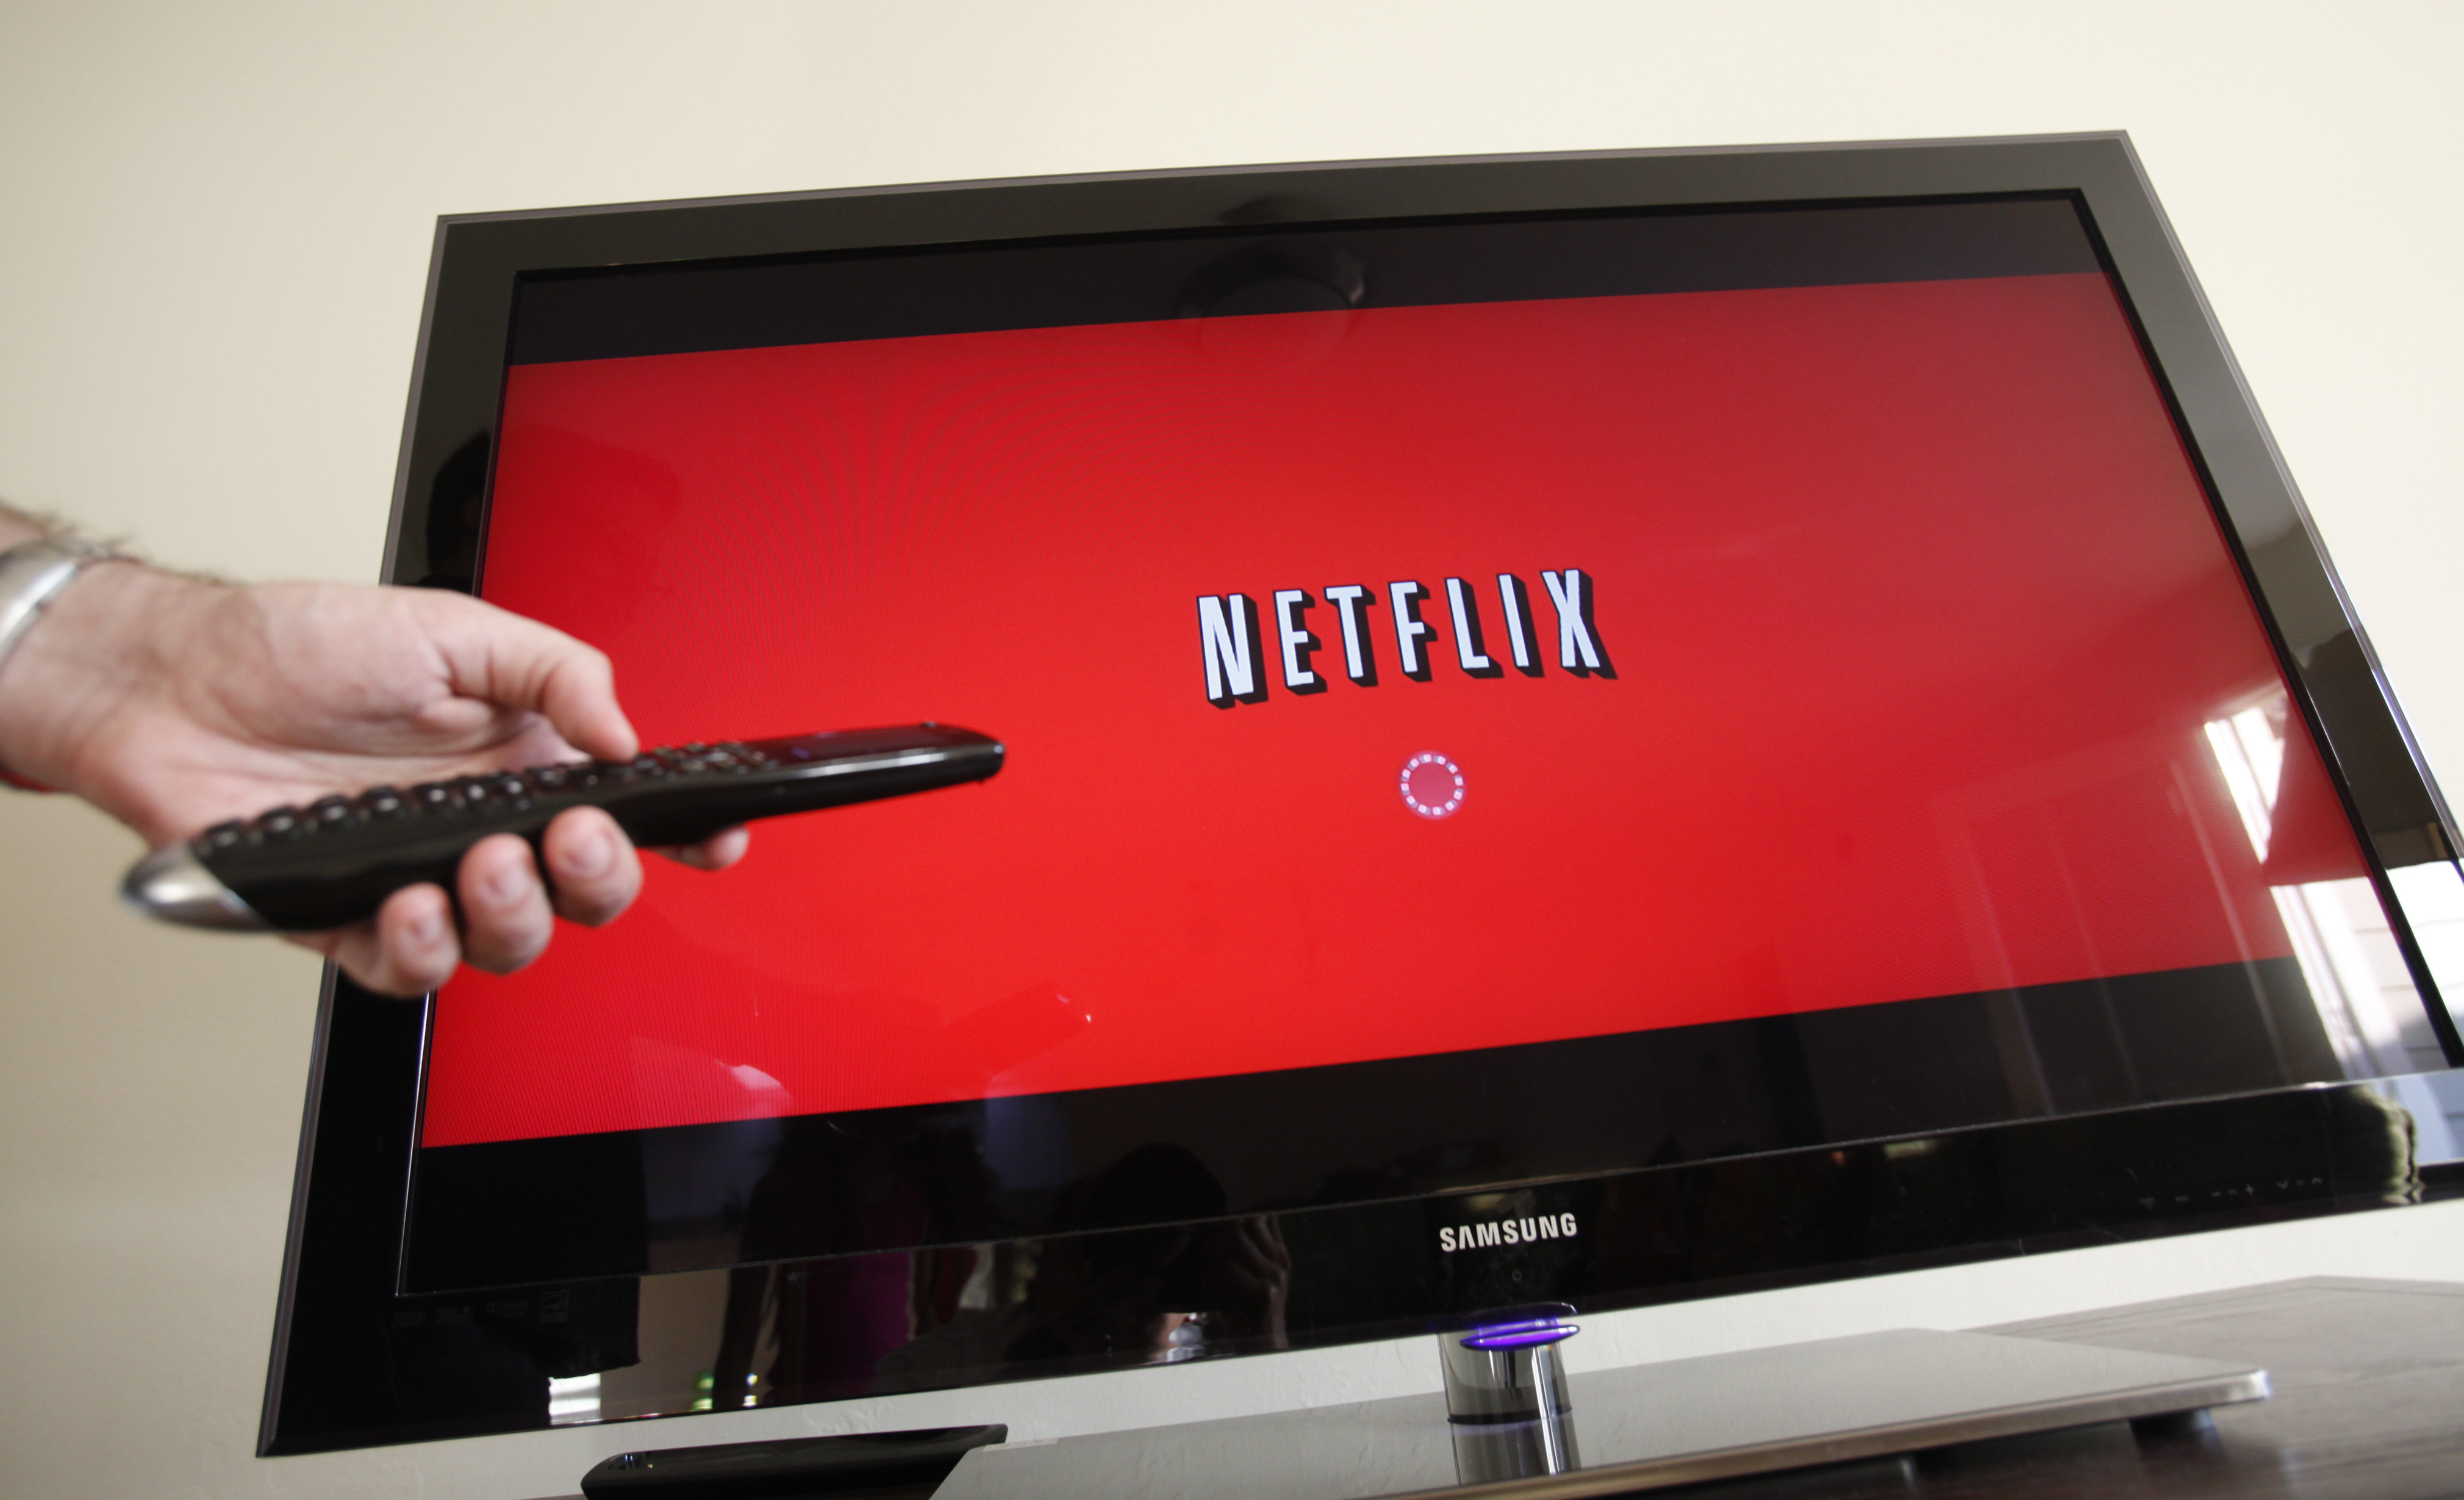 Fish tank kings netflix - File In This July 20 2010 File Photo A Person Uses Netflix In